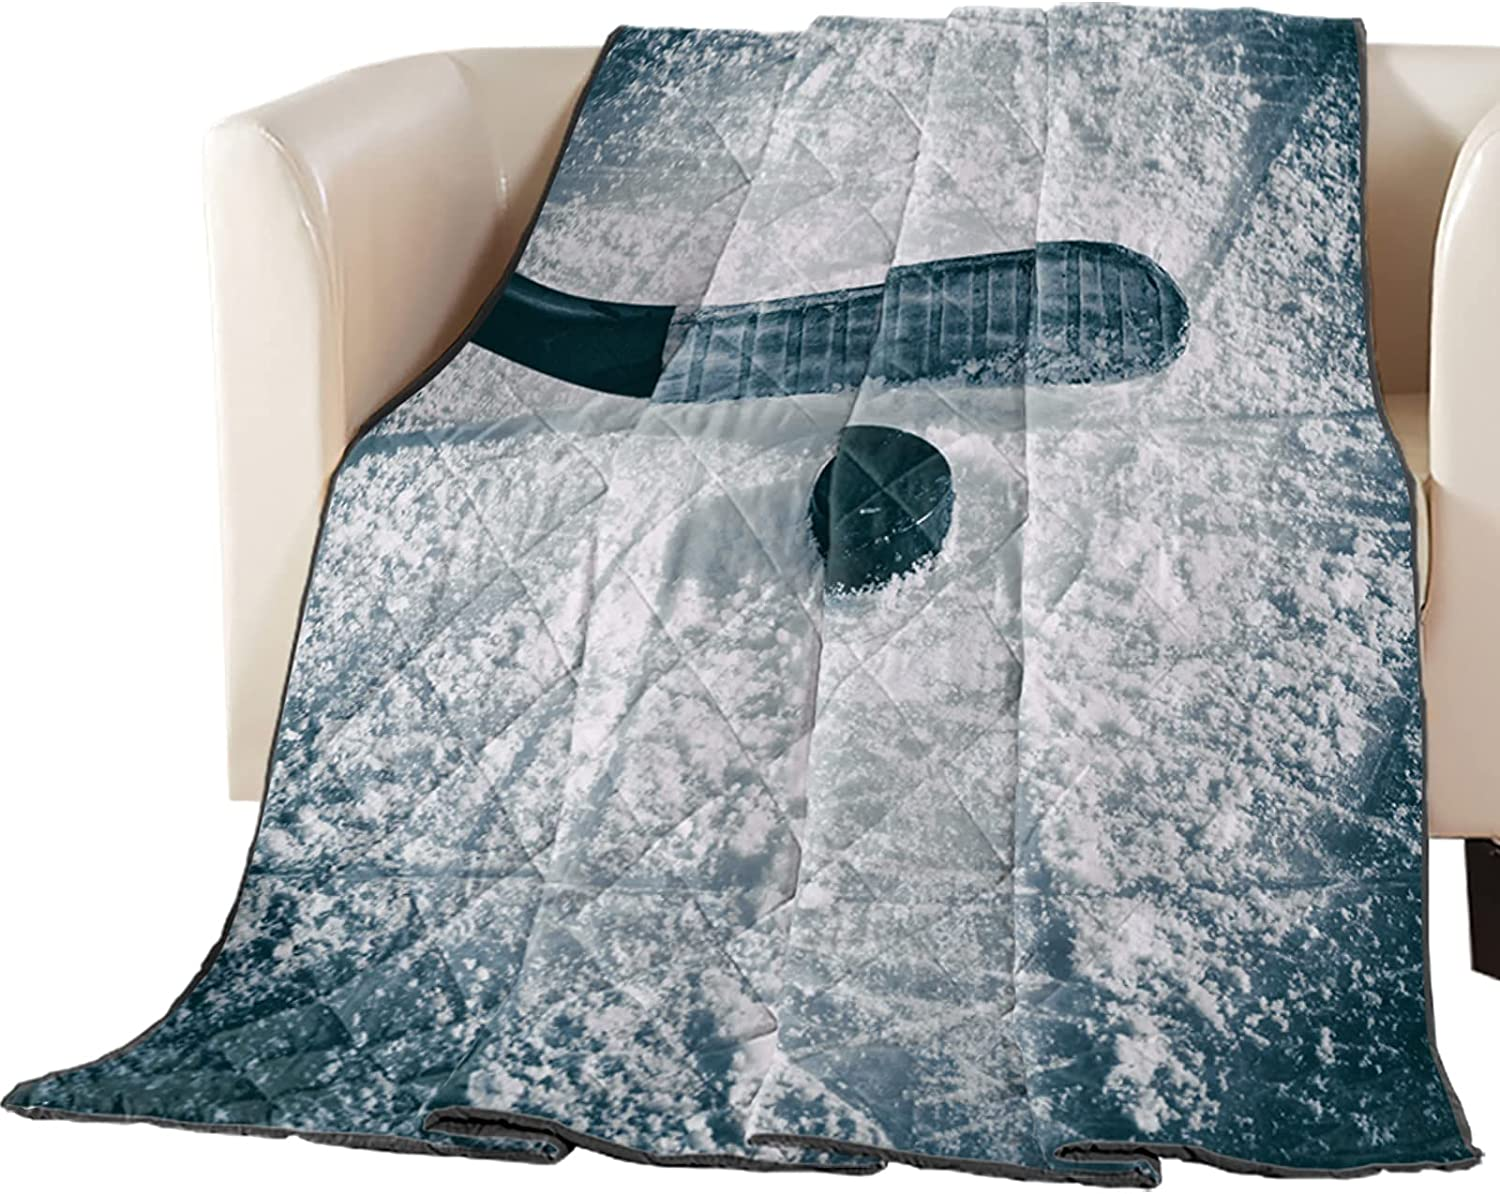 Luck Sky Premium Coverlet Diamond Hock Stitched 98x116in Weekly Latest item update Quilted